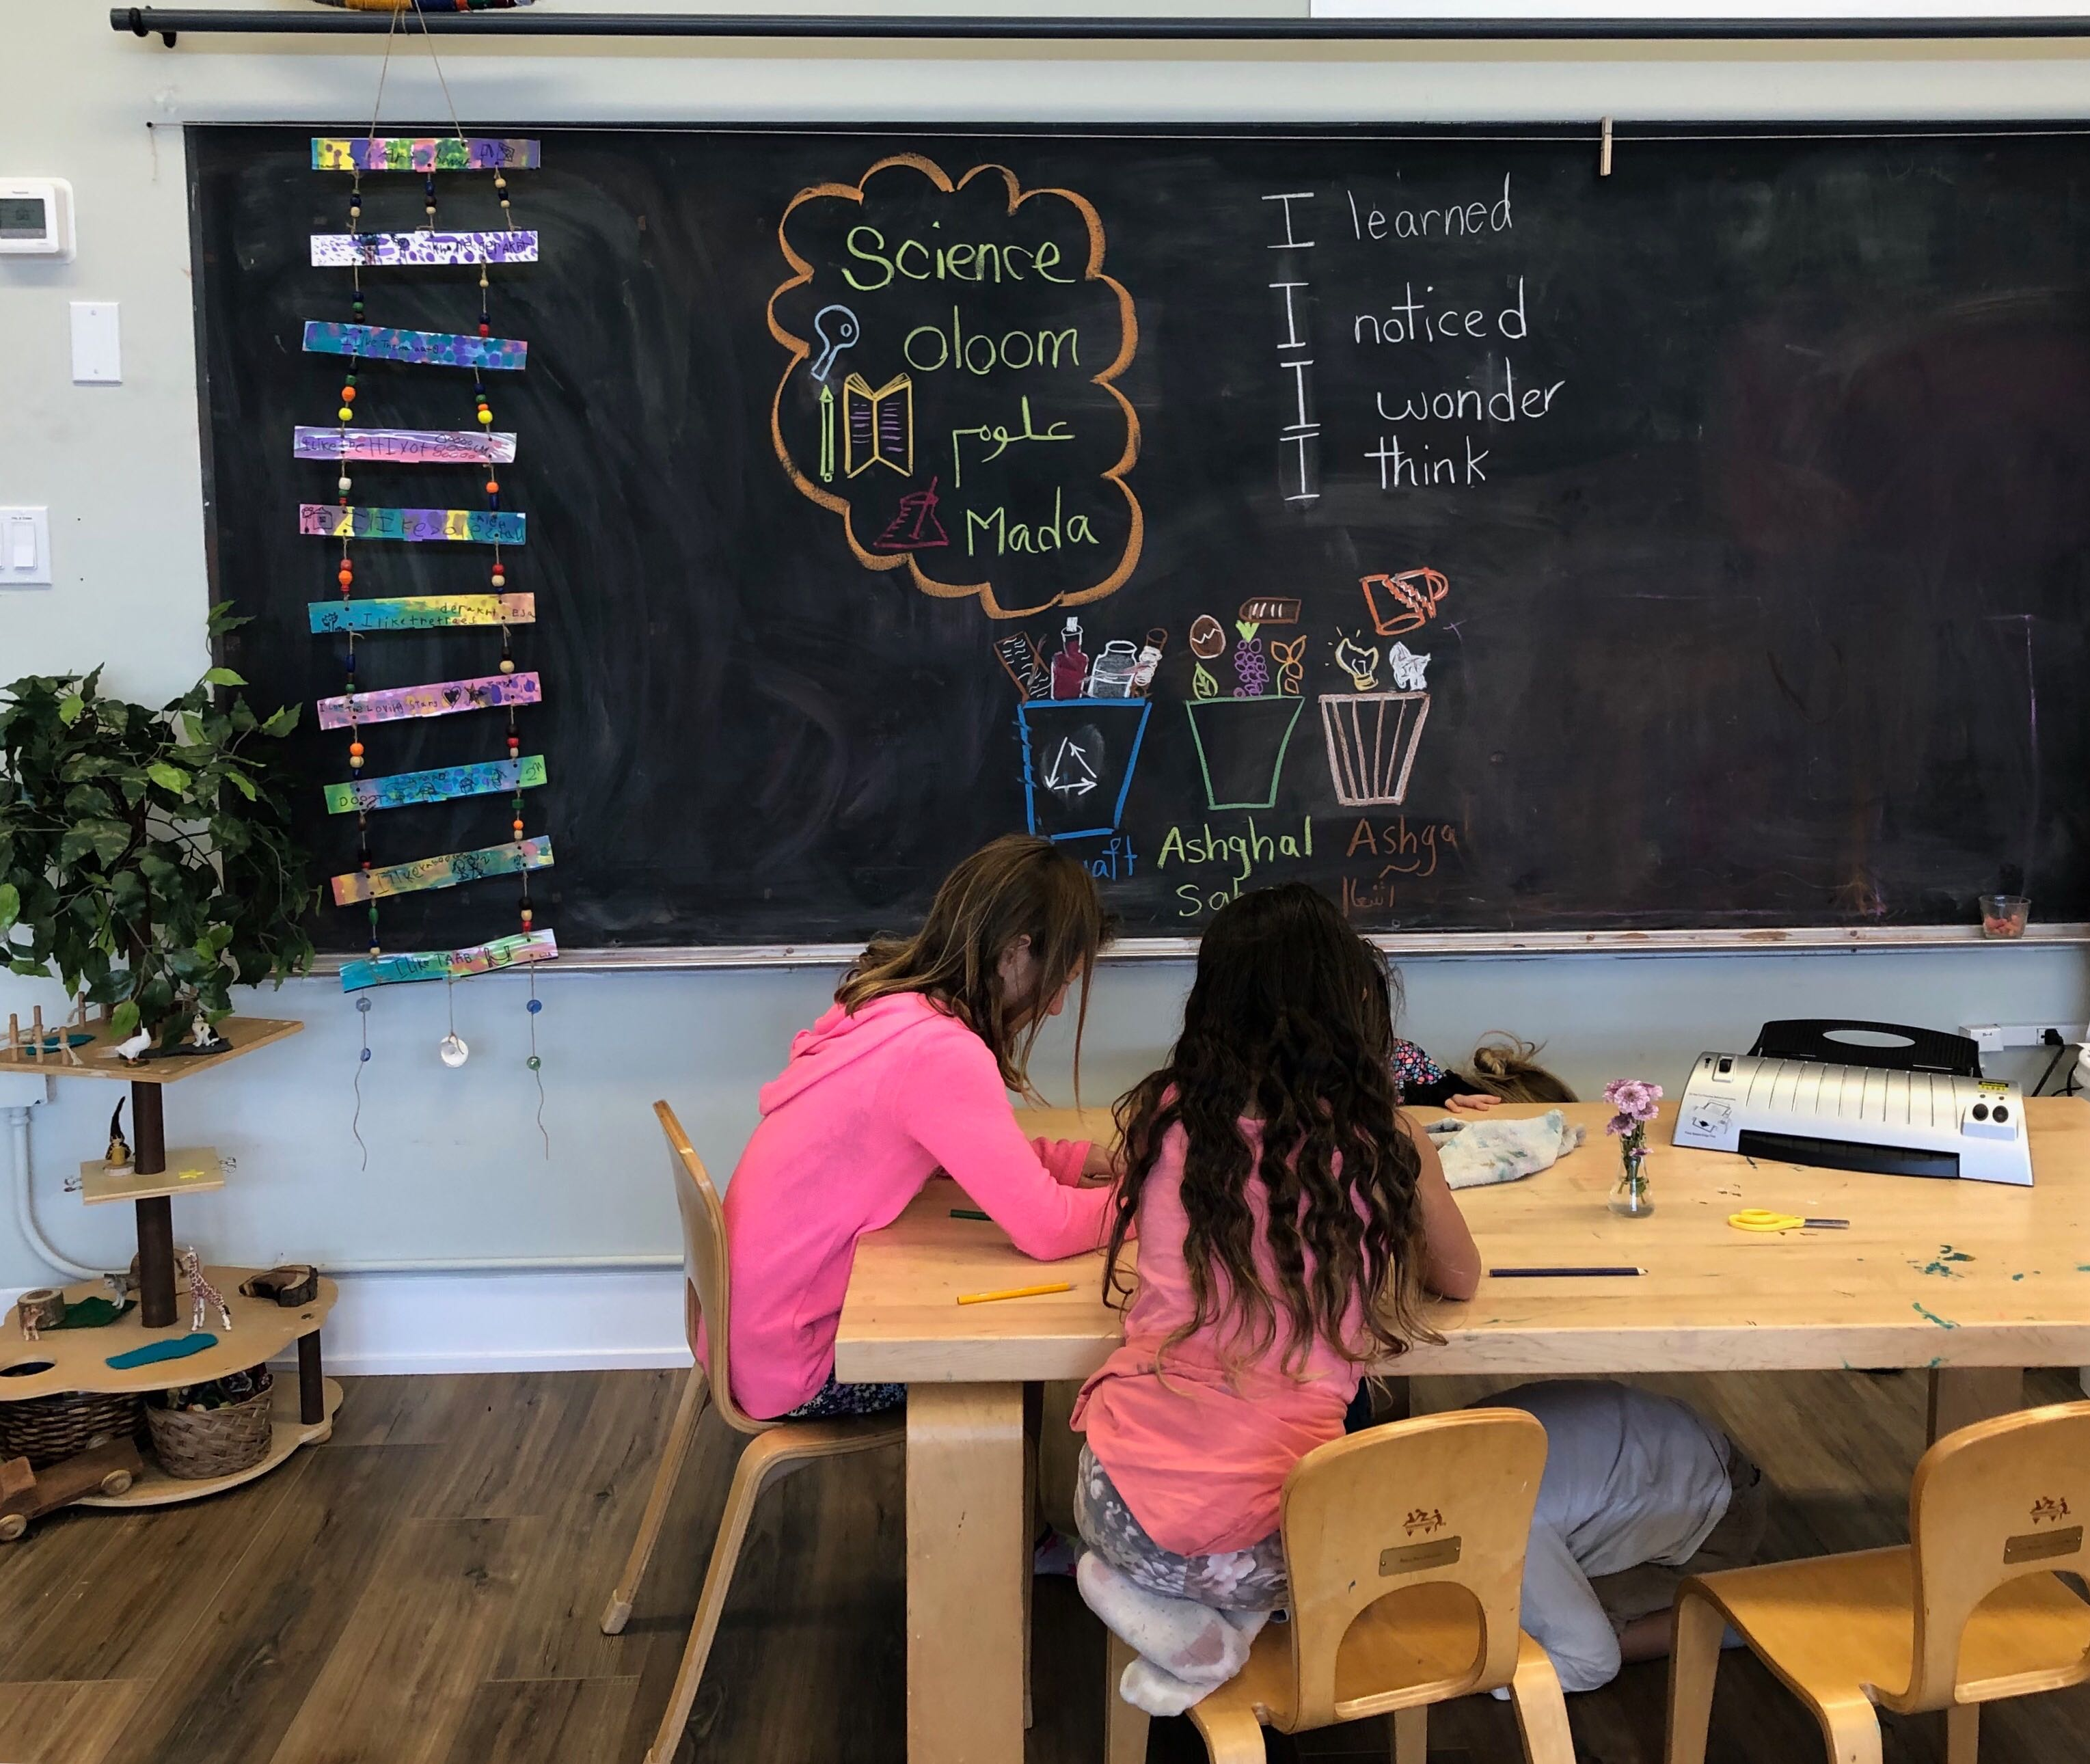 Two young girls sit a table in front of a chalkboard.